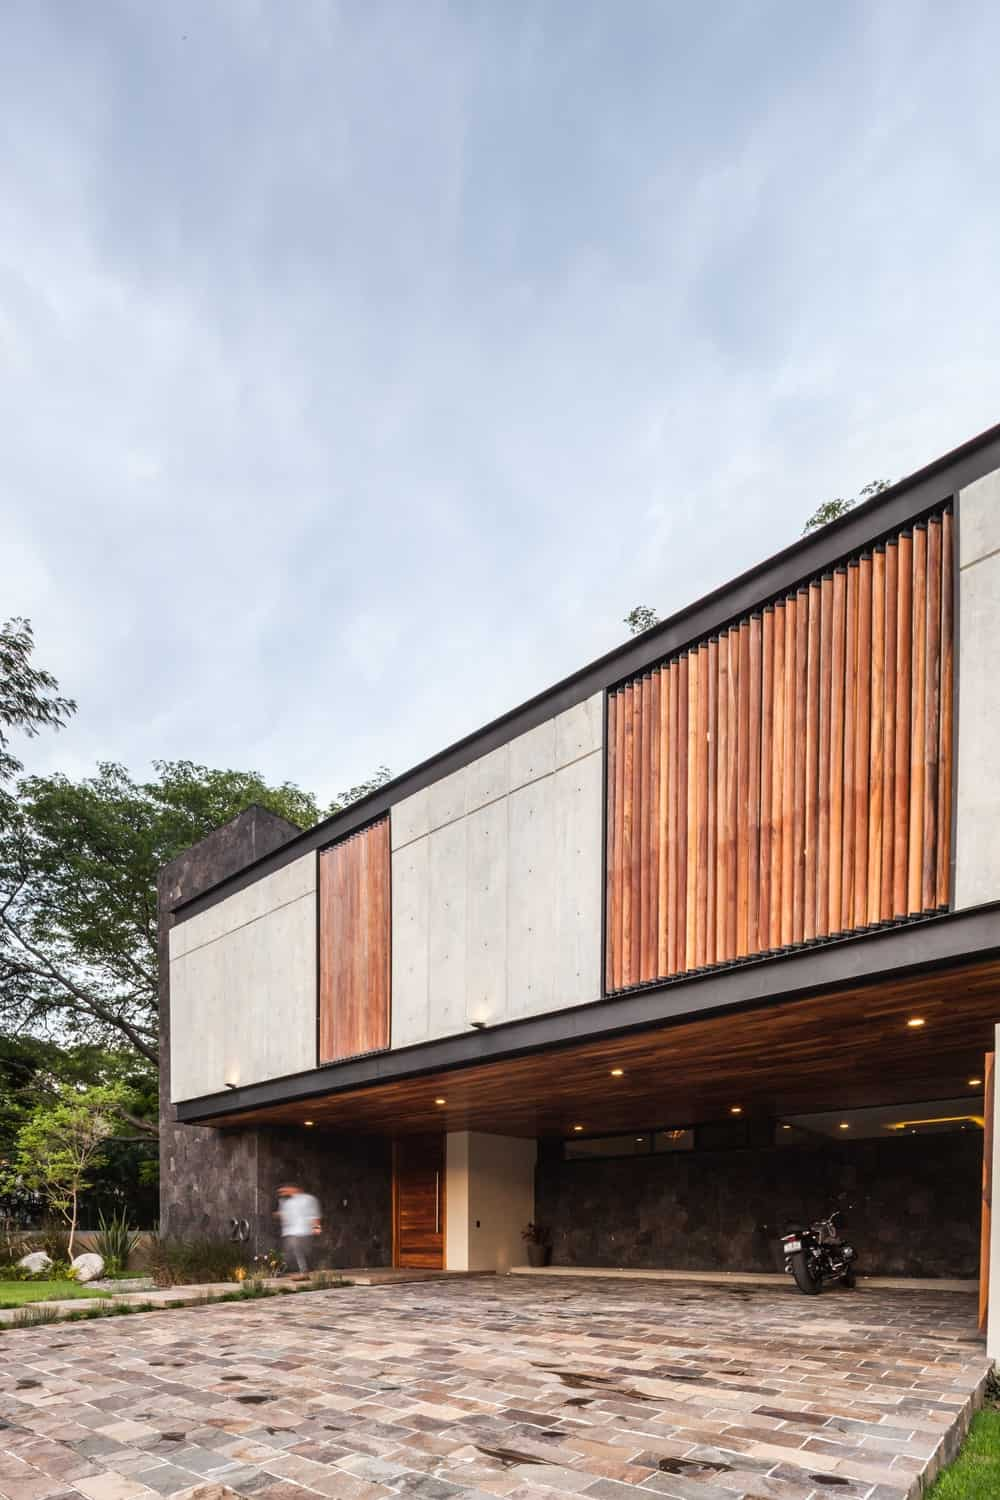 This closer look at the front of the house showcases the concrete walls of the second kevel adorned with bamboo walls that matches with the ceiling of the car port underneath.